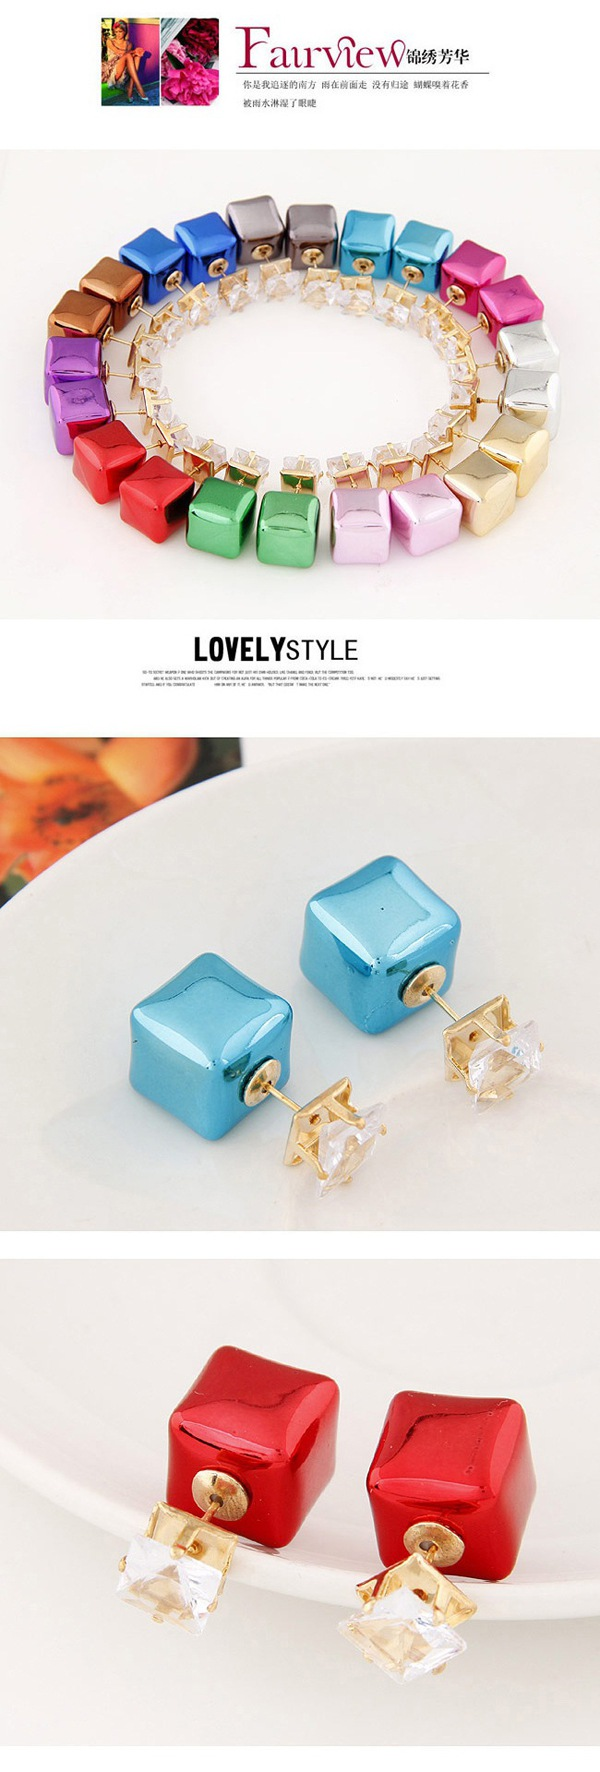 Anting Tusuk T6D7EA